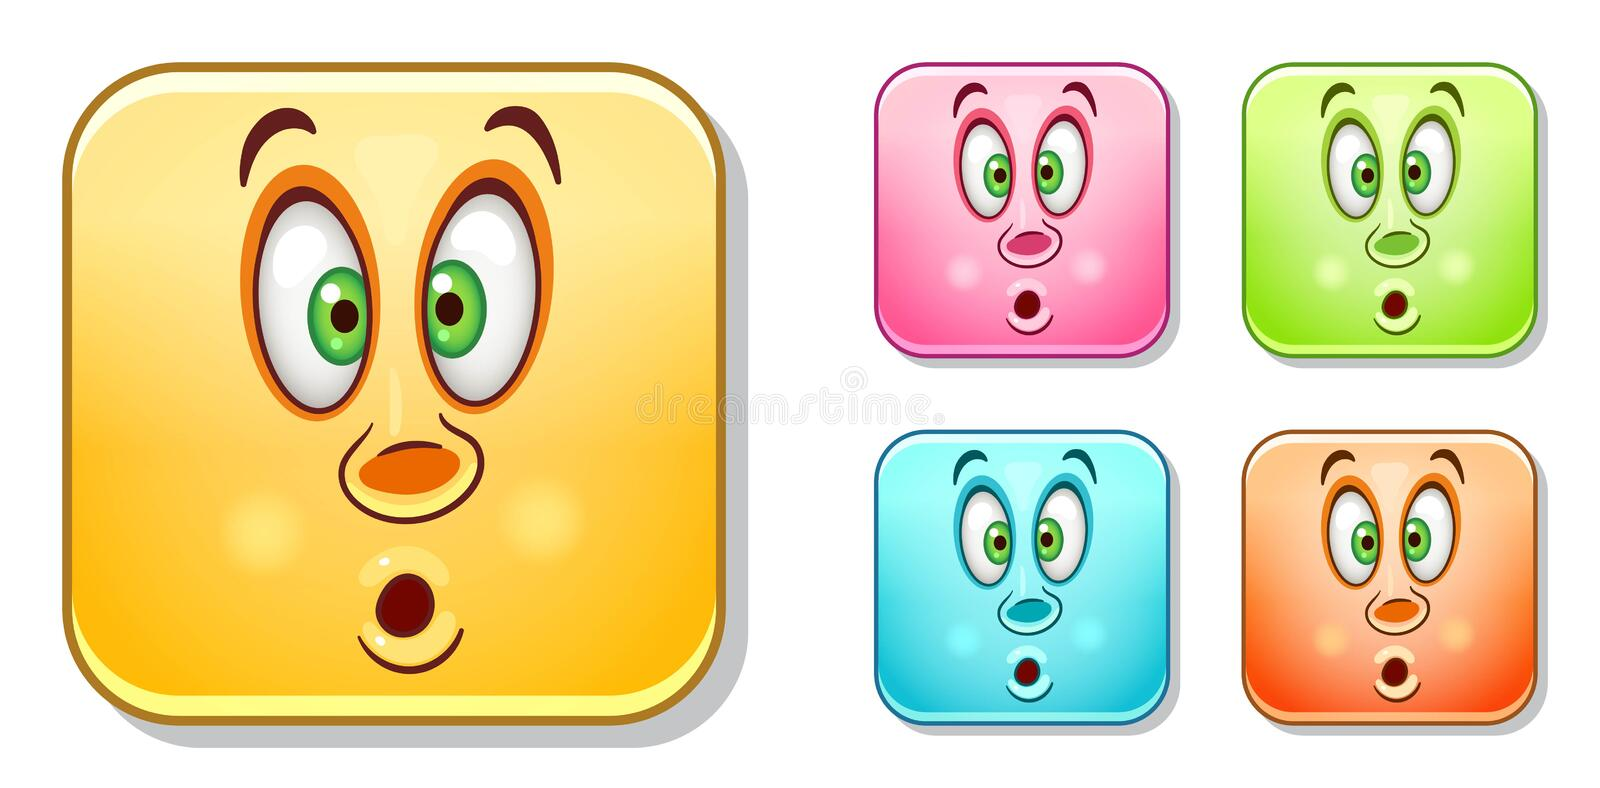 Pop-eyed Emoticons collection royalty free stock image